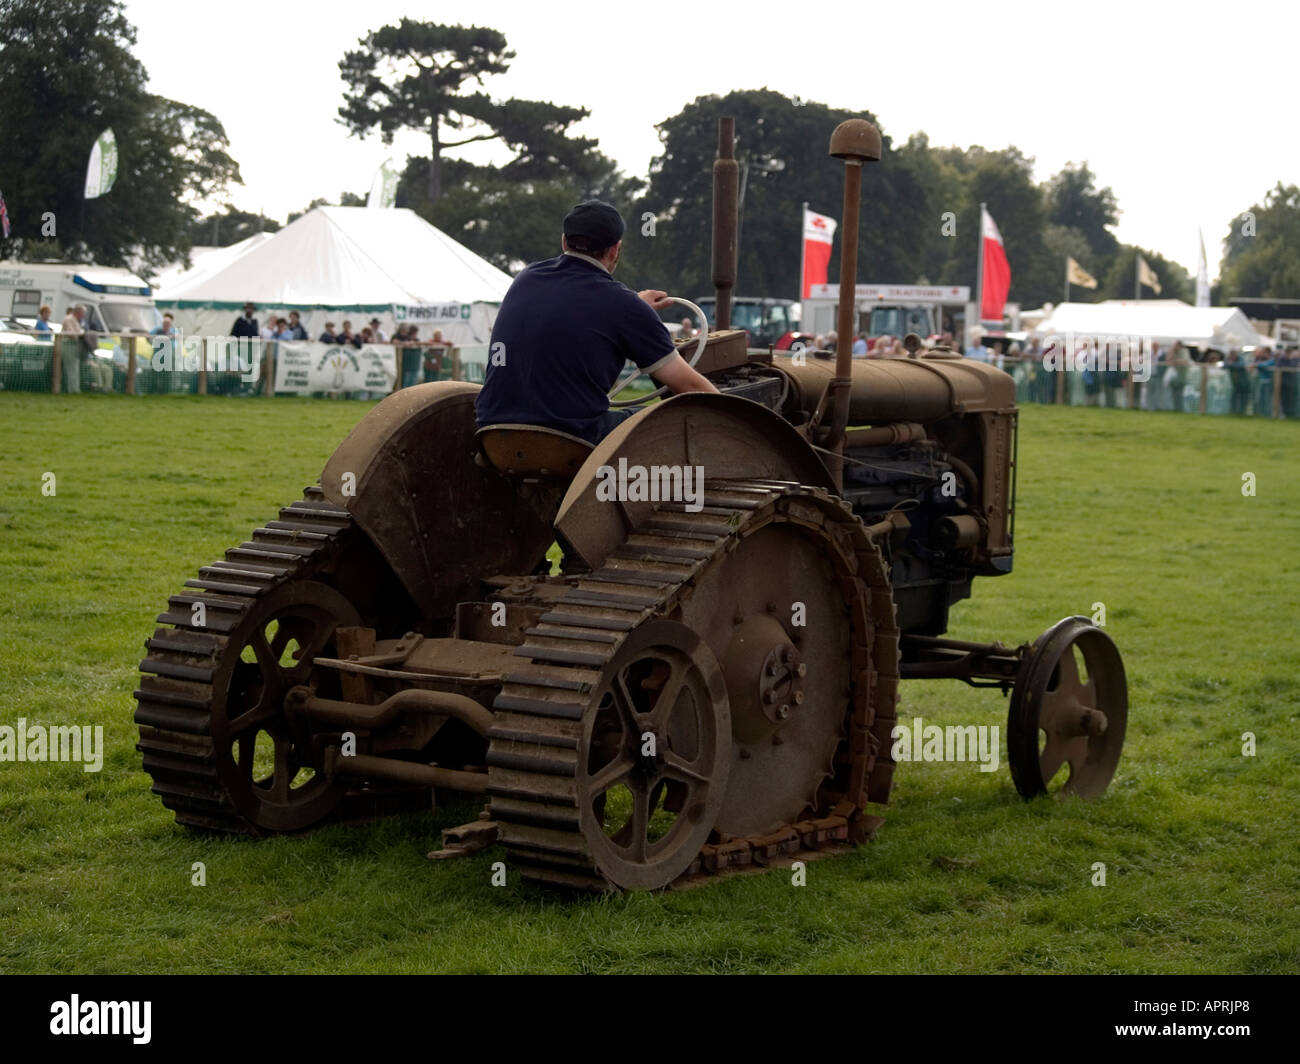 Old Tractor With Tracks : A fordson major e n half track vintage tractor at